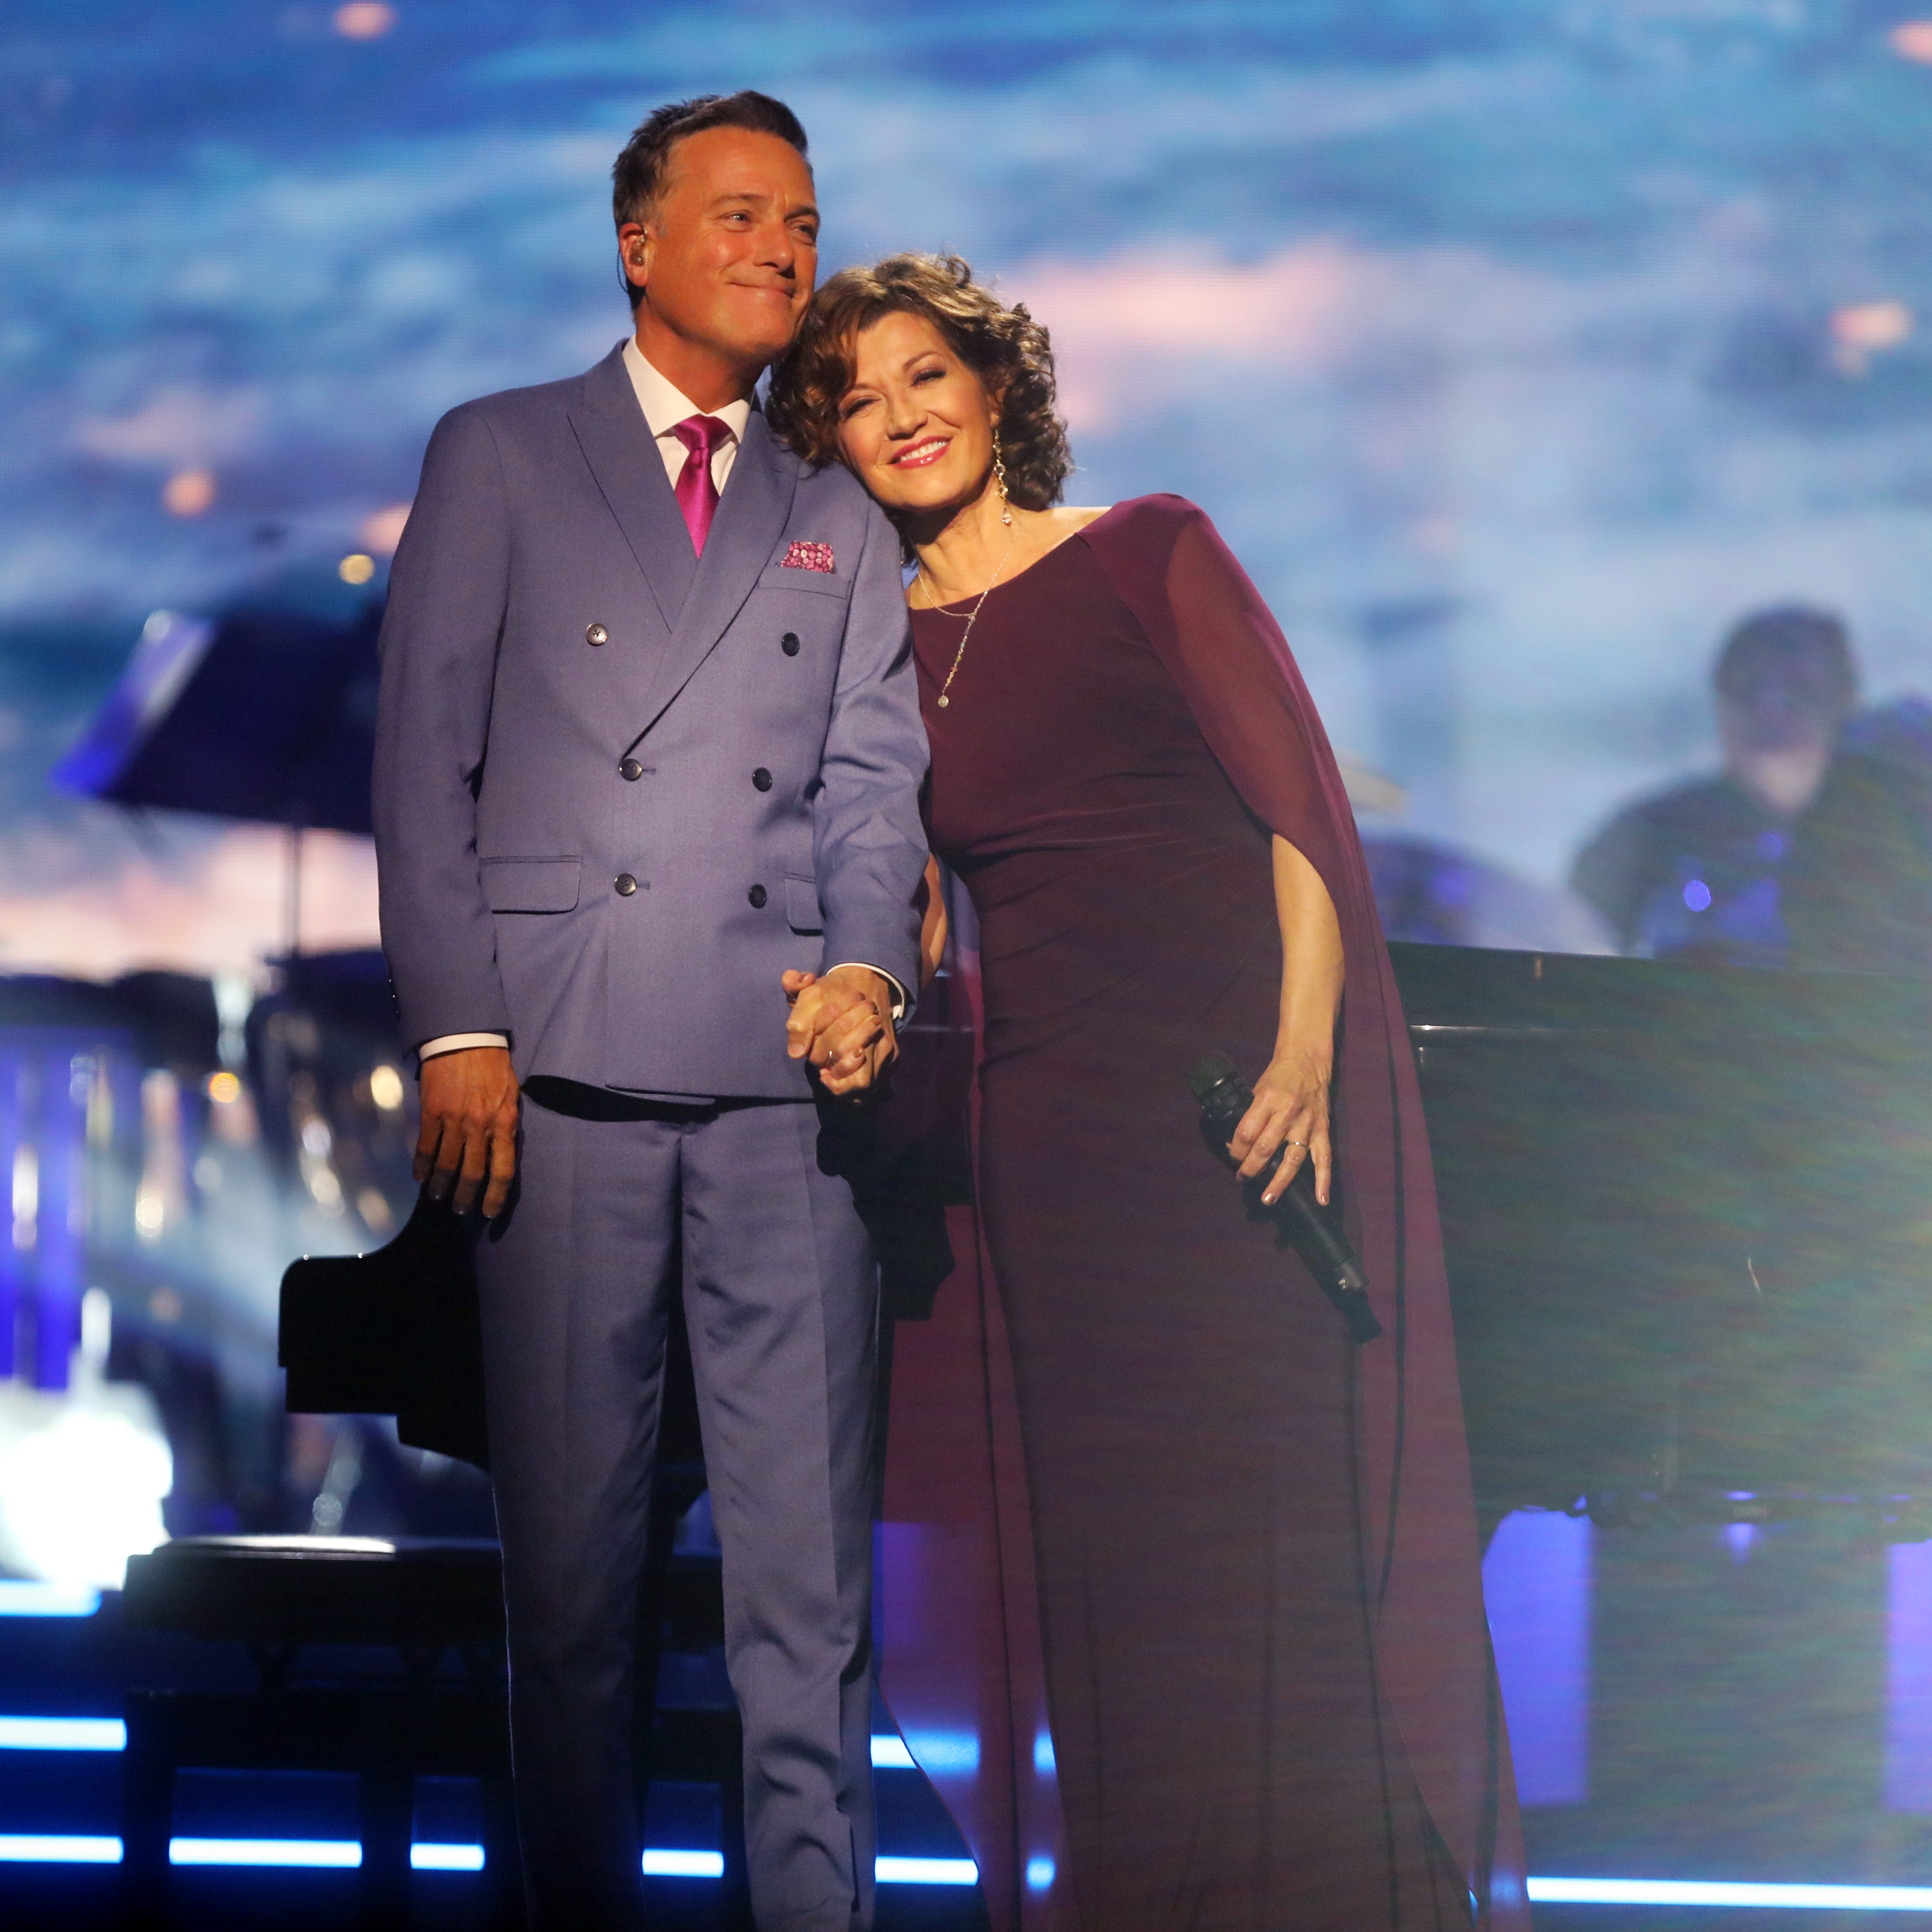 Amy Grant on Michael W. Smith: 'He's such a good, sweet, kind man'